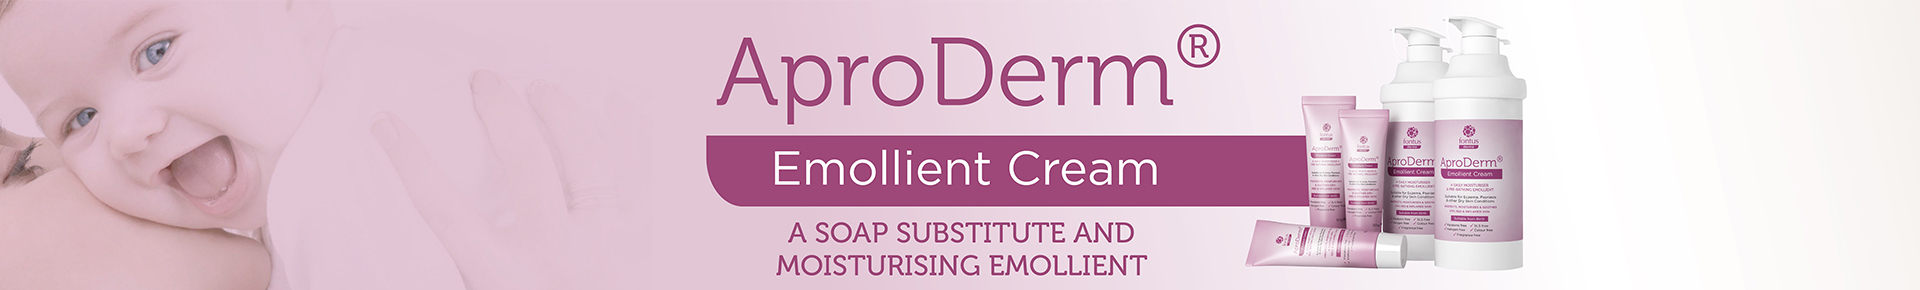 hcp-emollient-product-banner